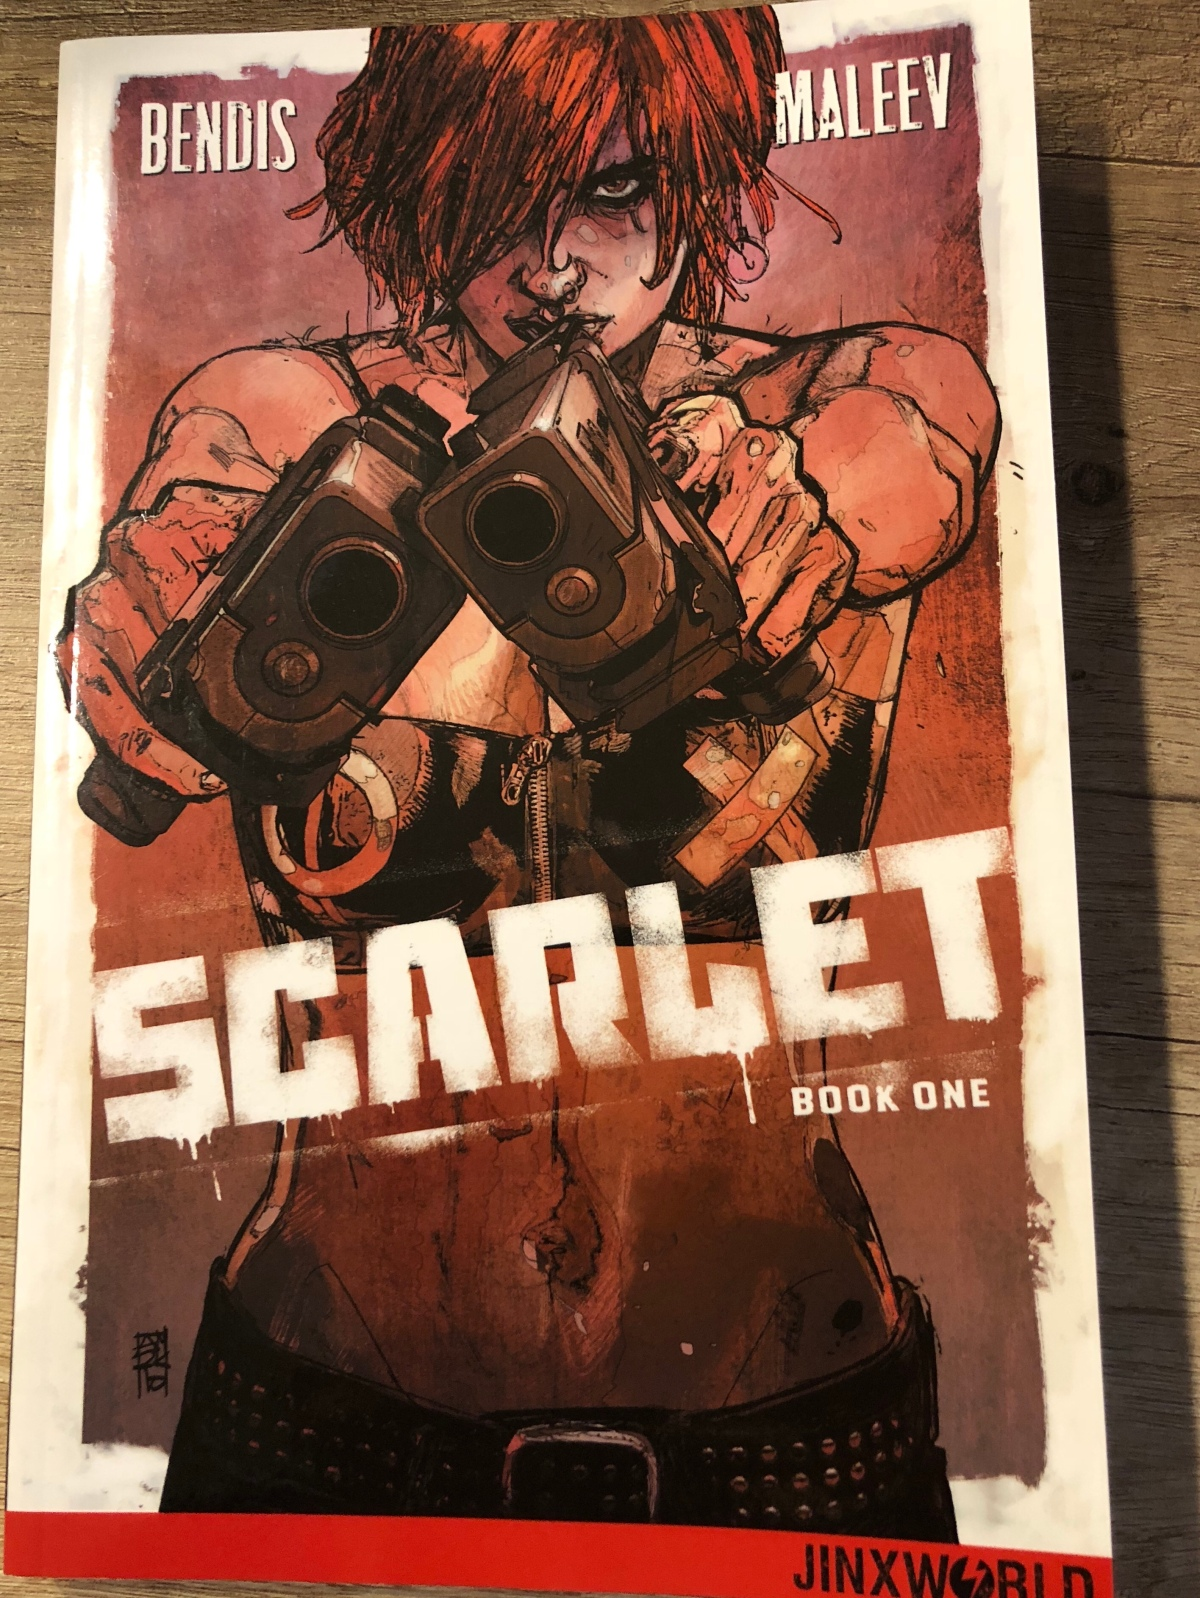 Scarlet Book One |Review